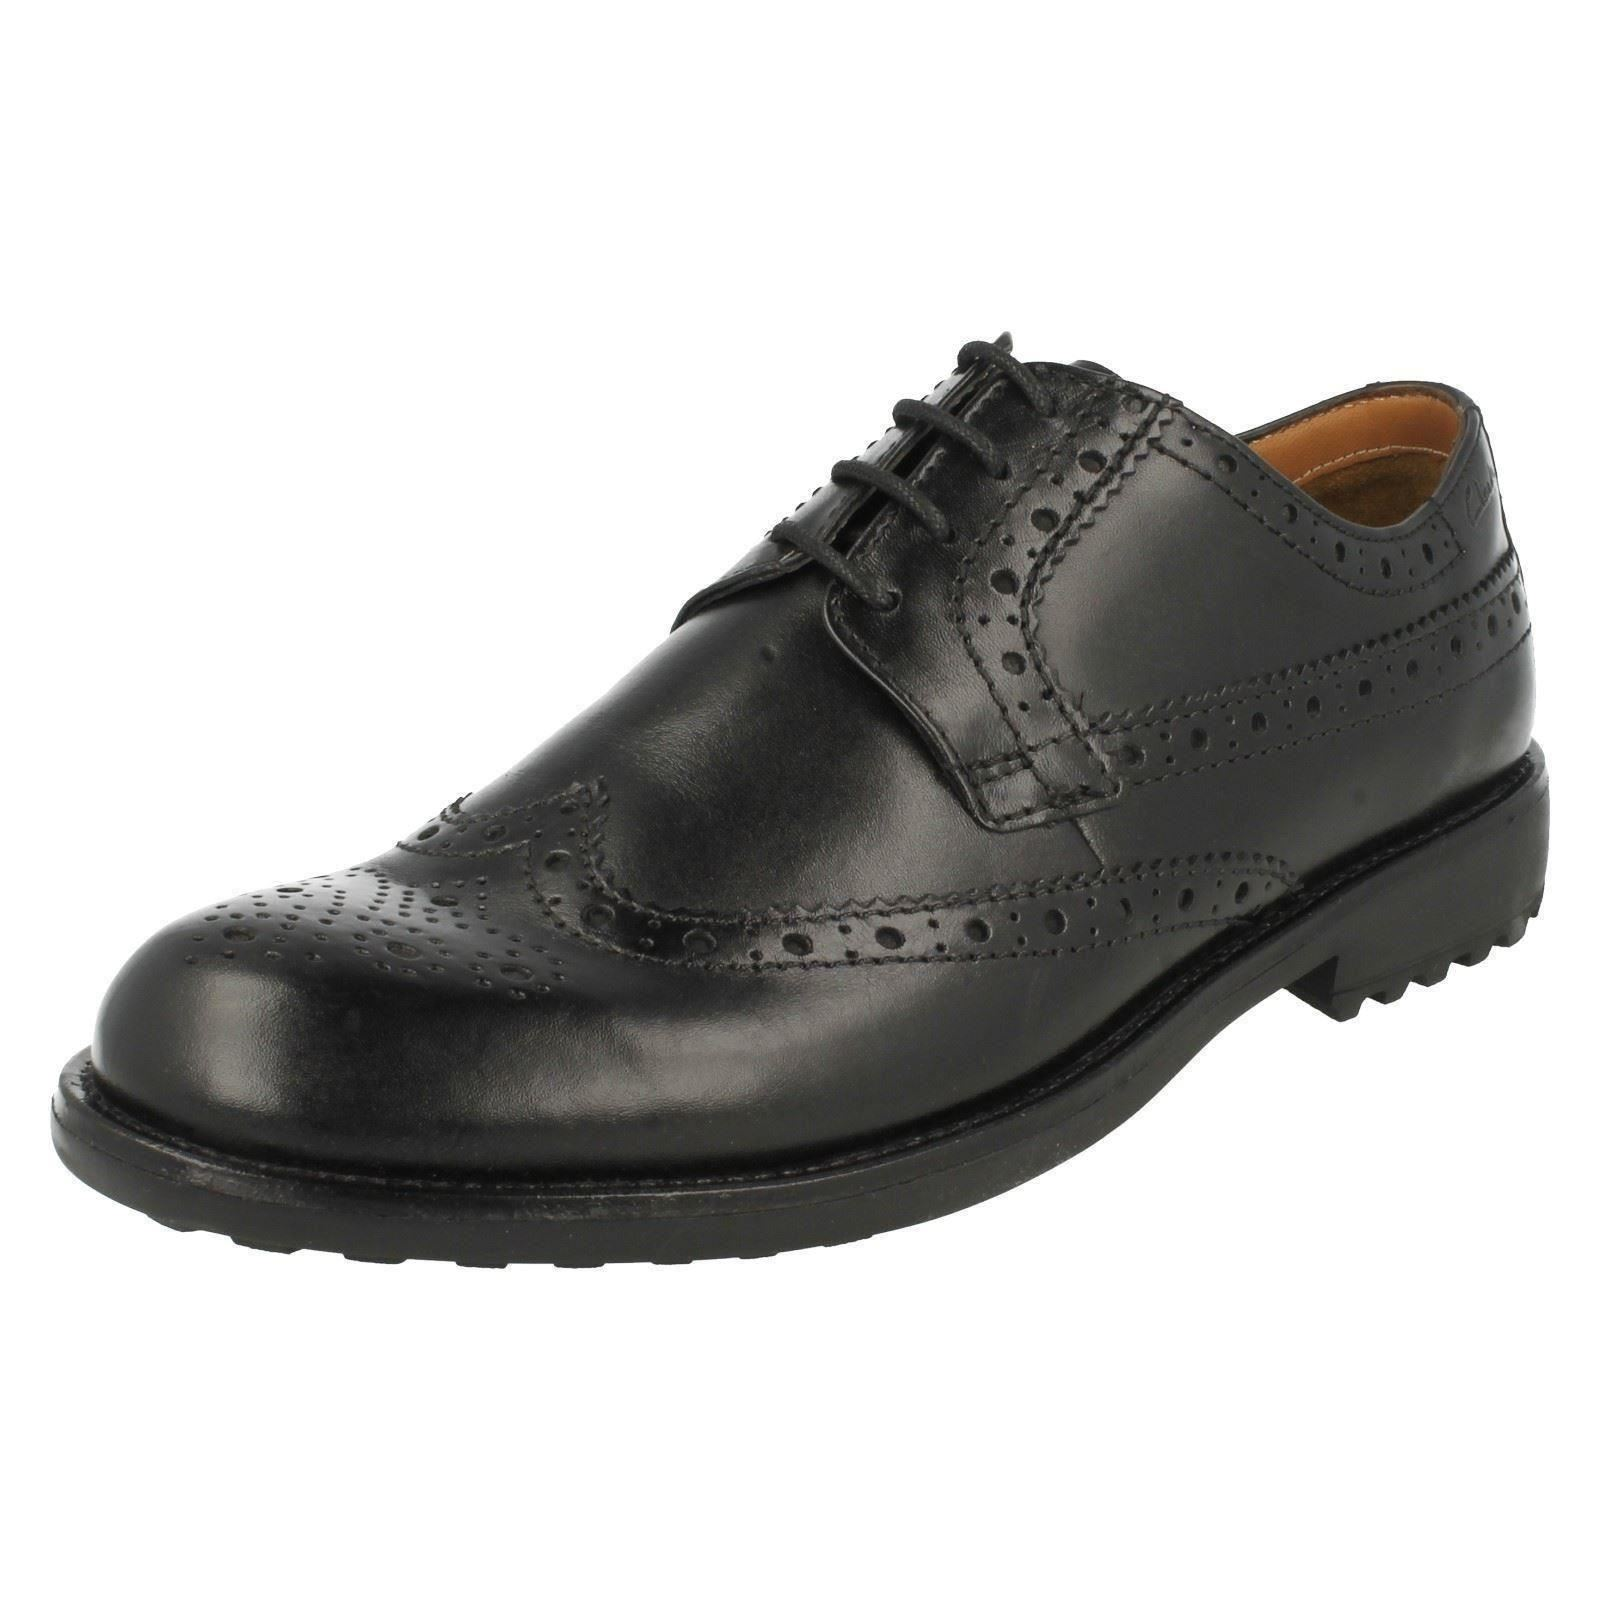 Uomo Brogues Clarks Smart Extra Light Brogues Uomo 'Glenmore Limit' 593b47